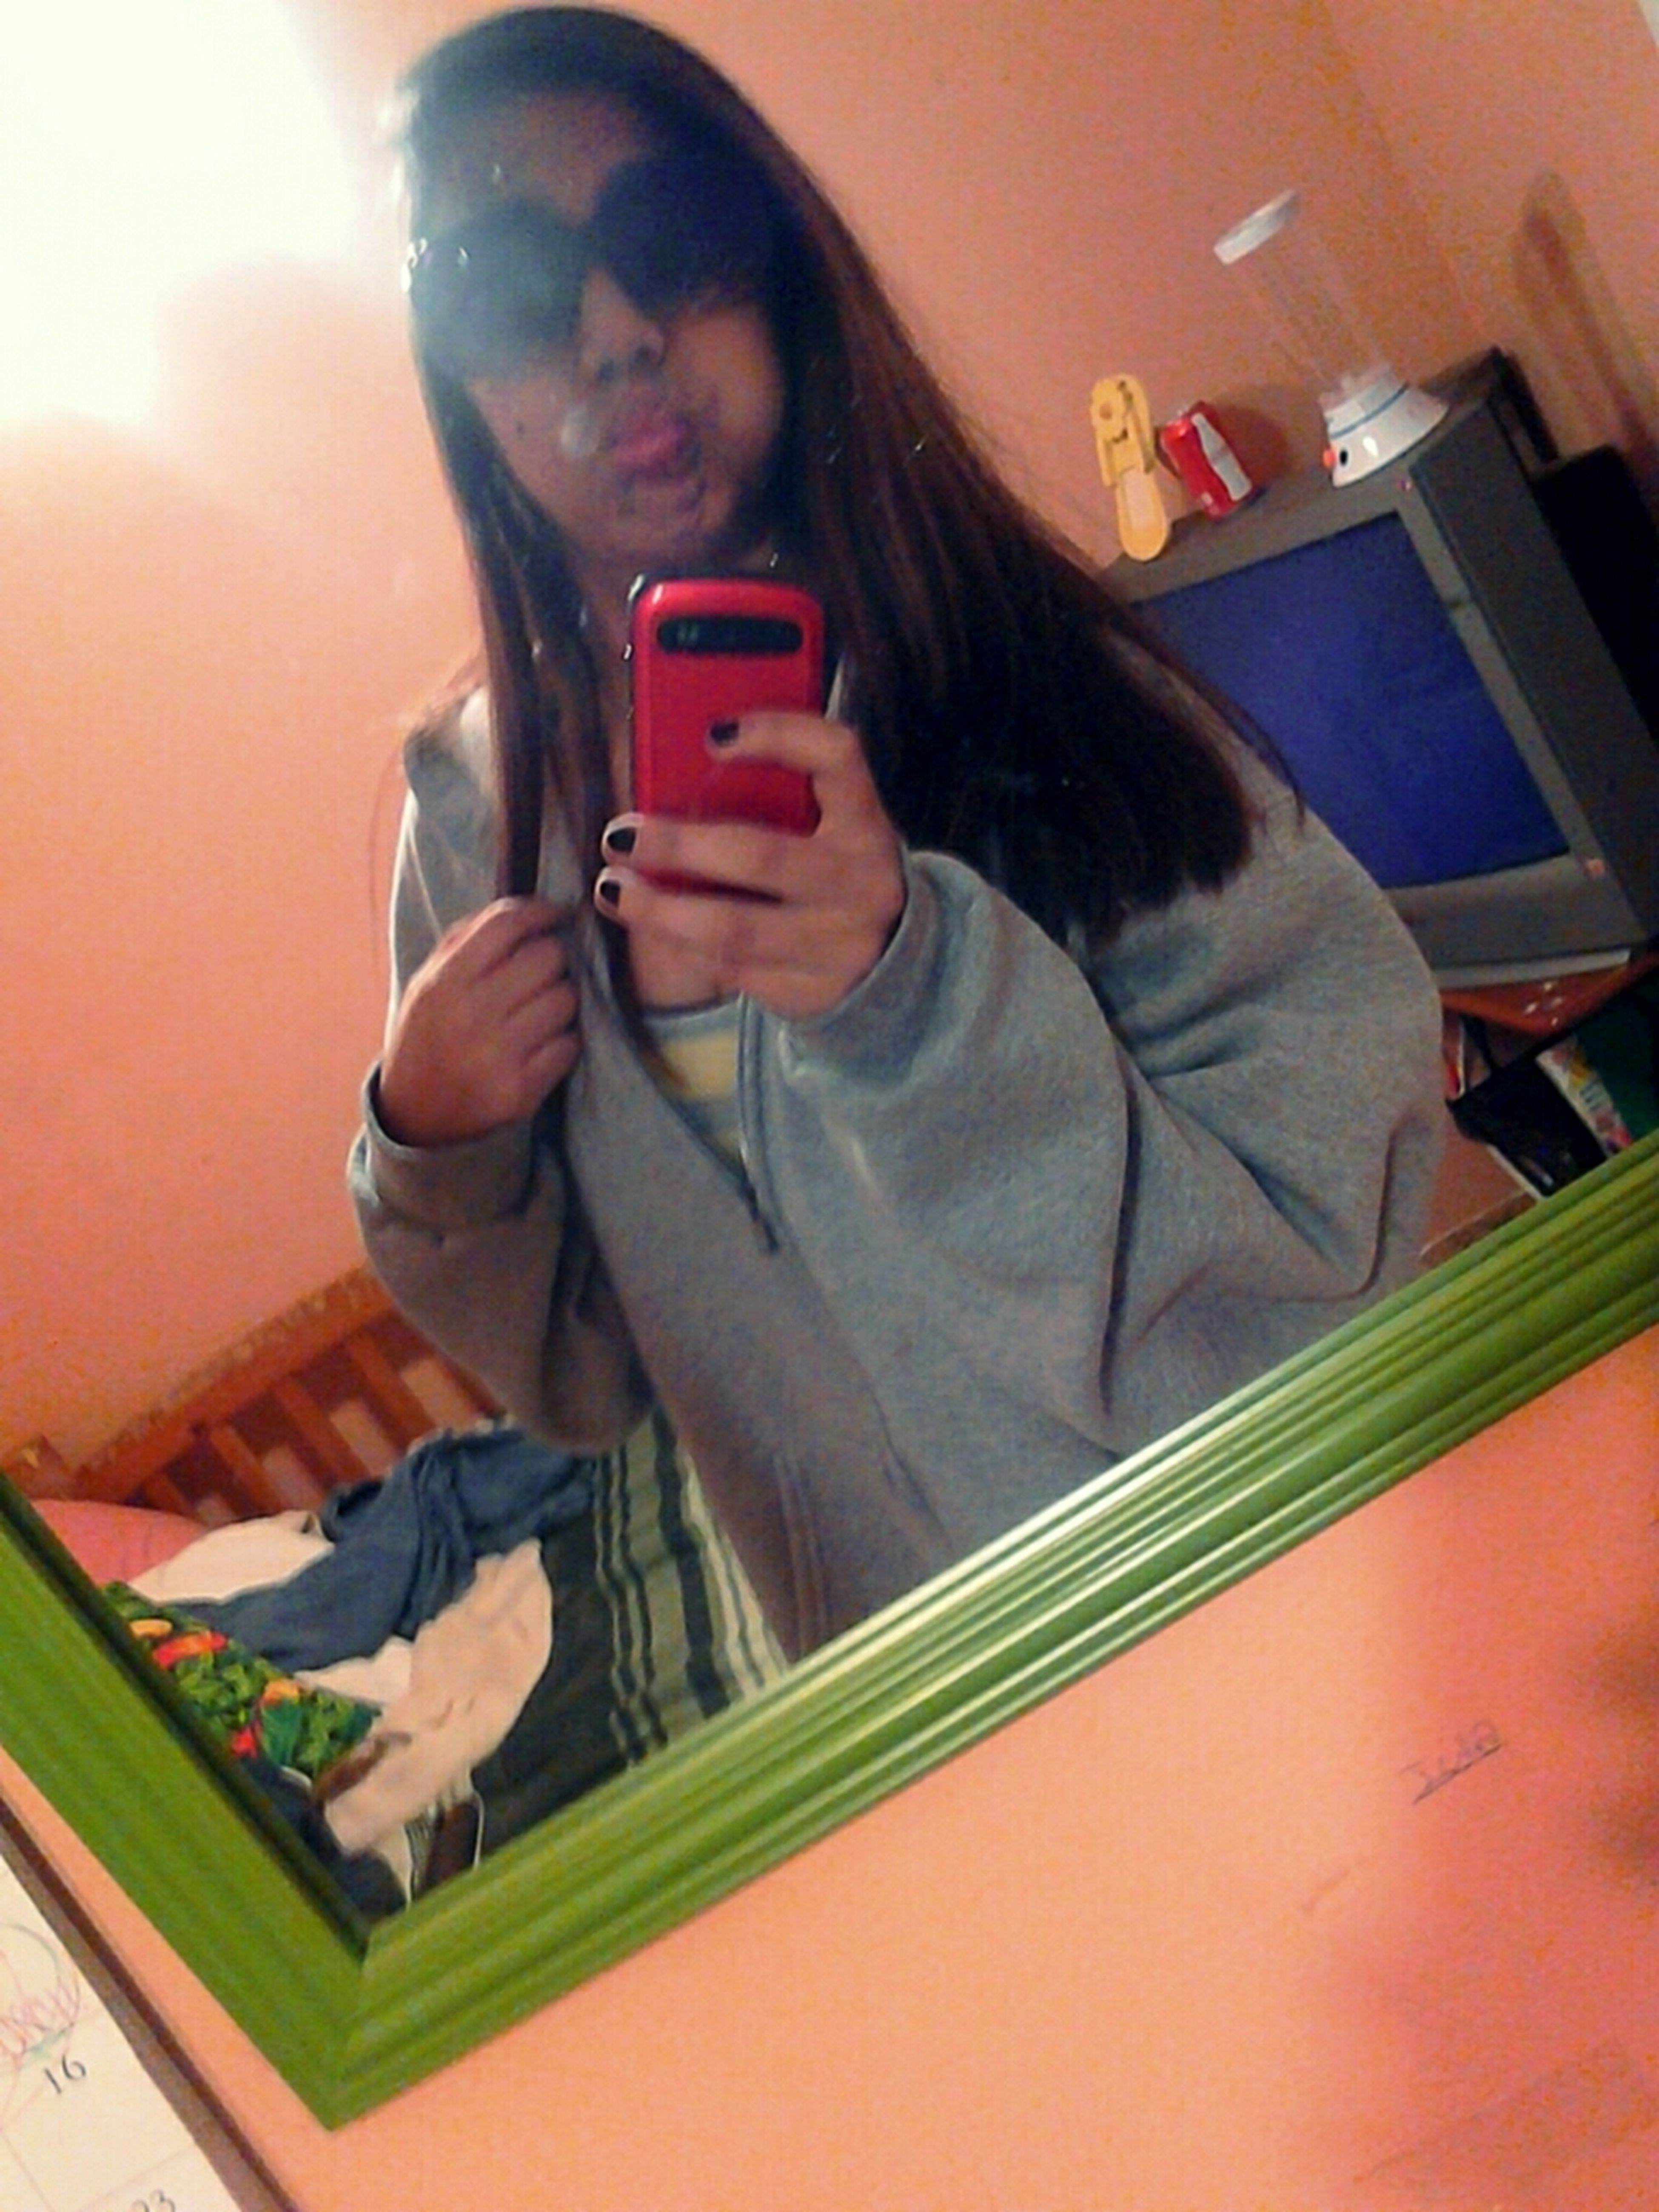 Taking Pictures At Home Mu Room ^.^ Bored /.<